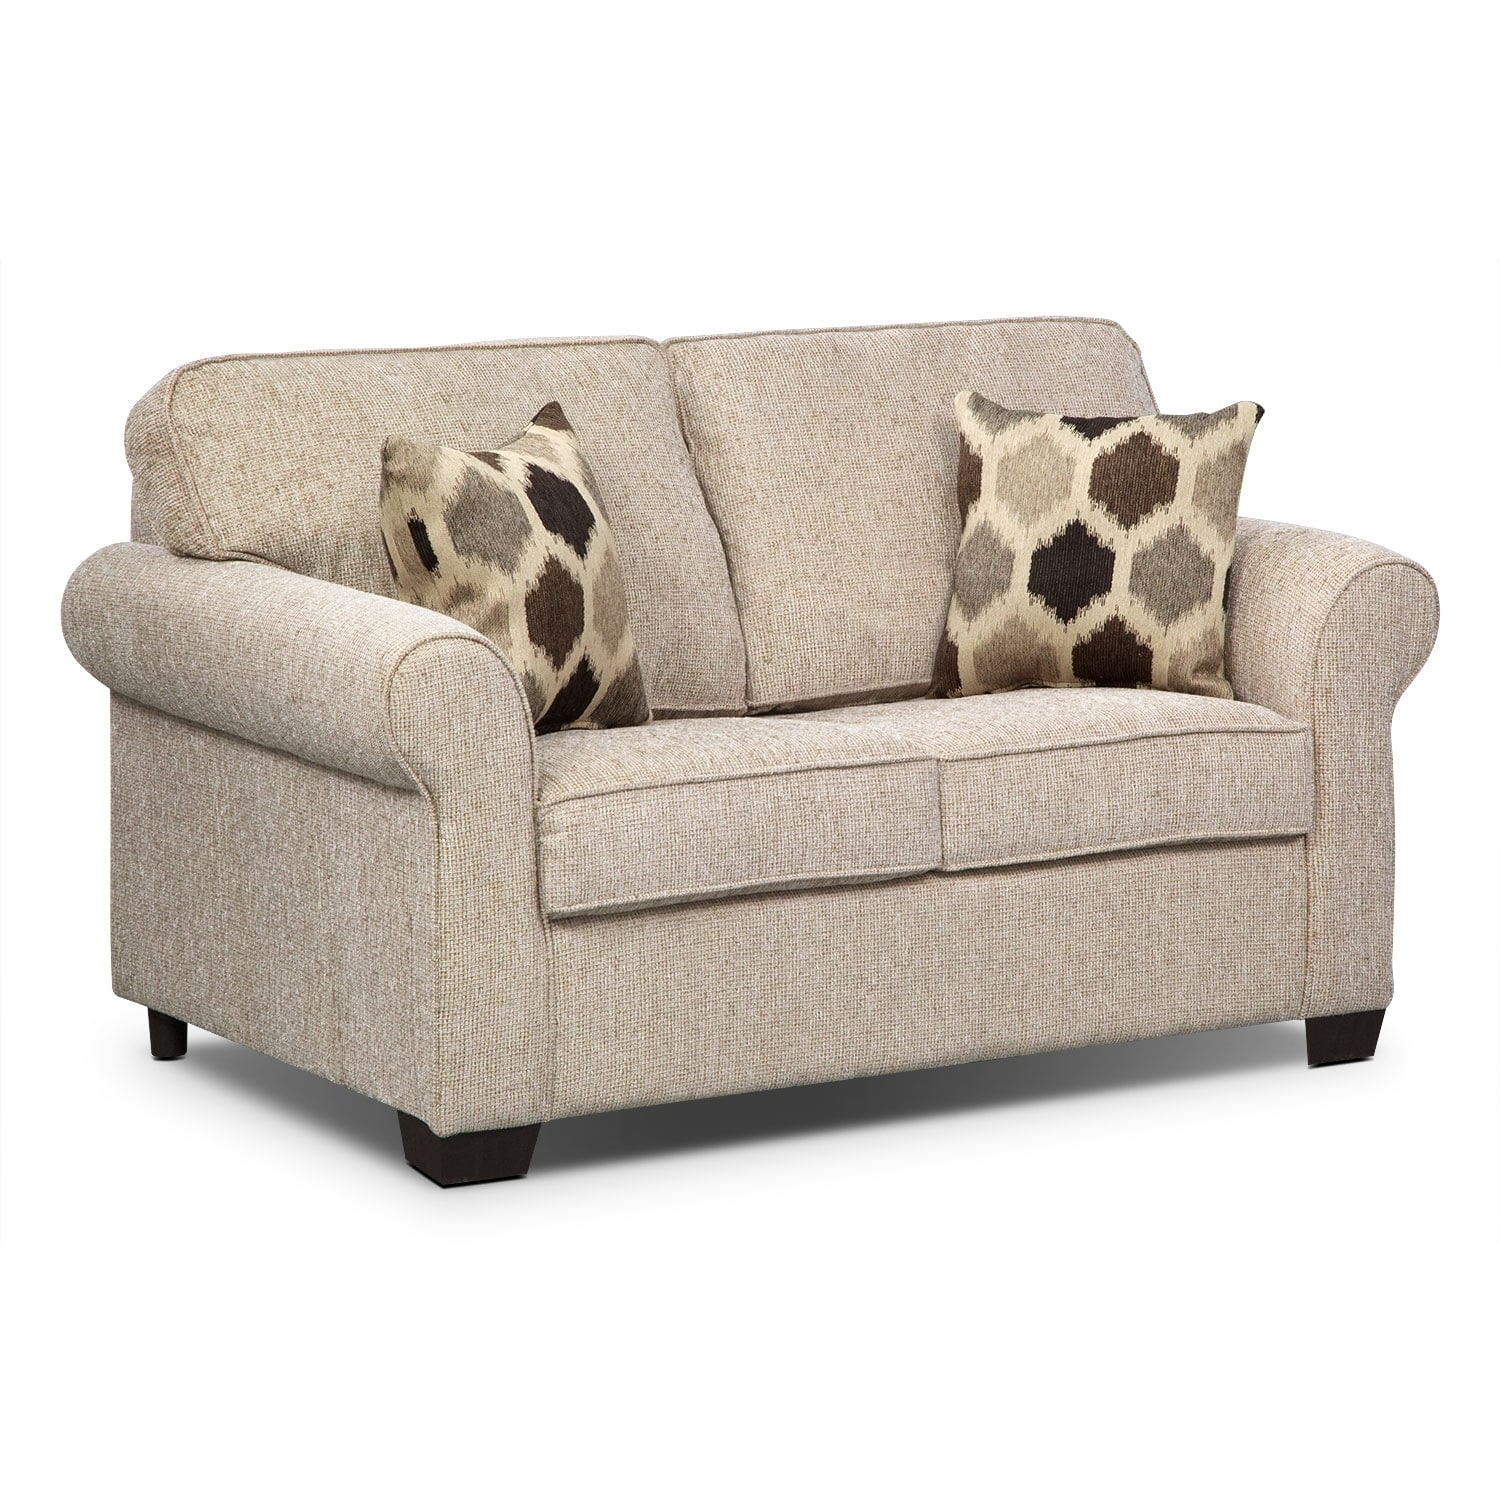 Living Room Furniture - Fletcher Twin Memory Foam Sleeper Sofa